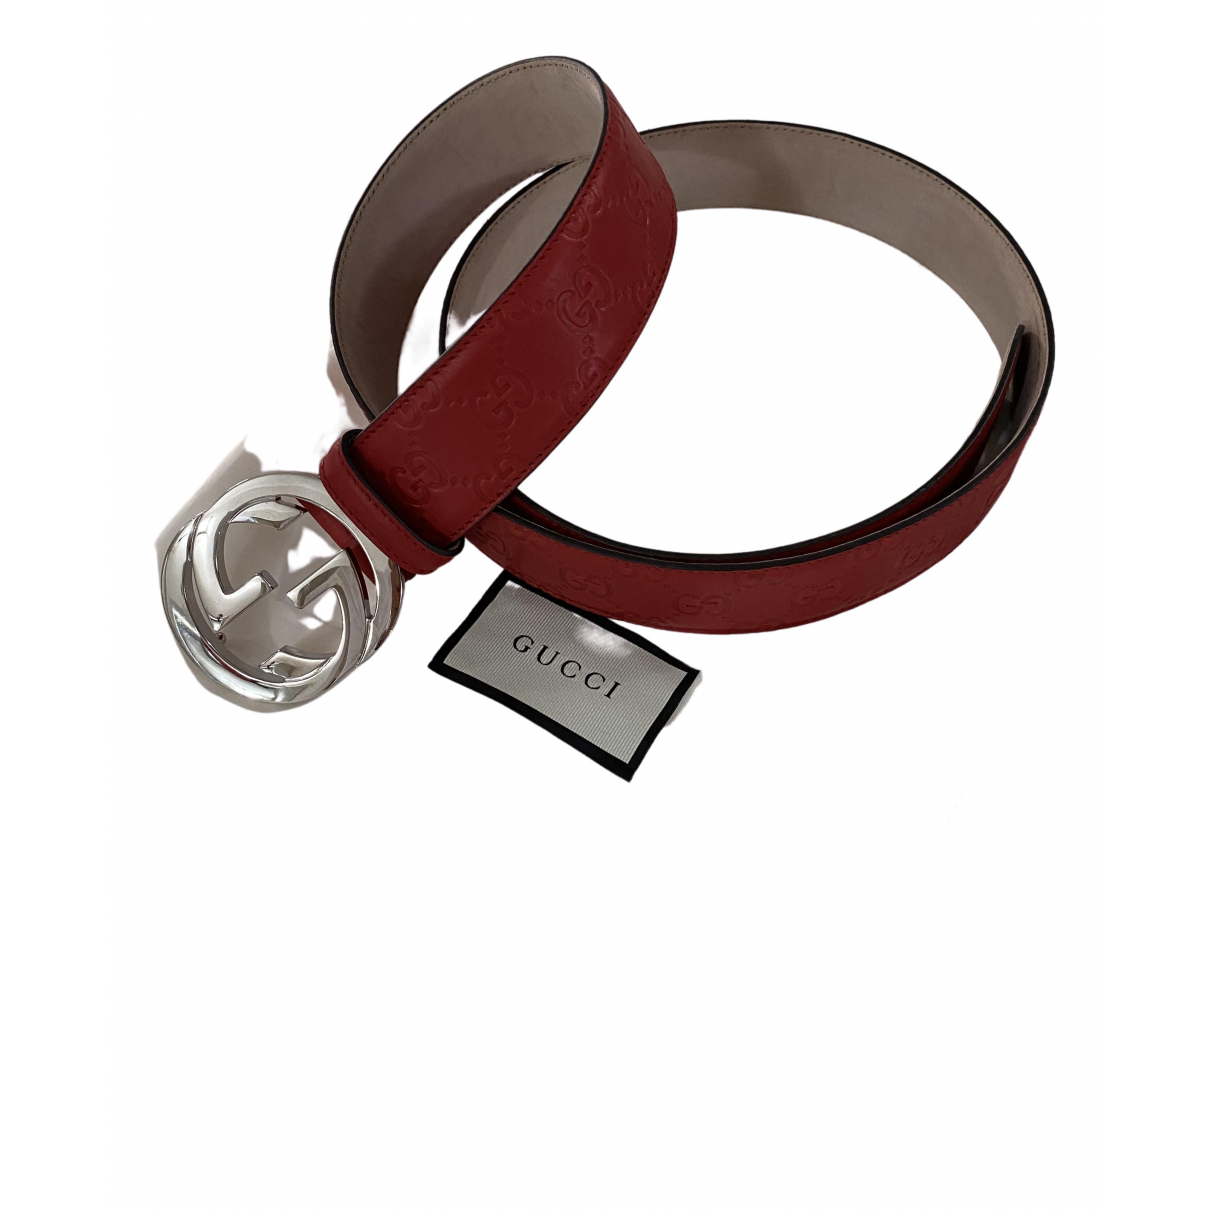 Cinturon Interlocking Buckle de Cuero Gucci